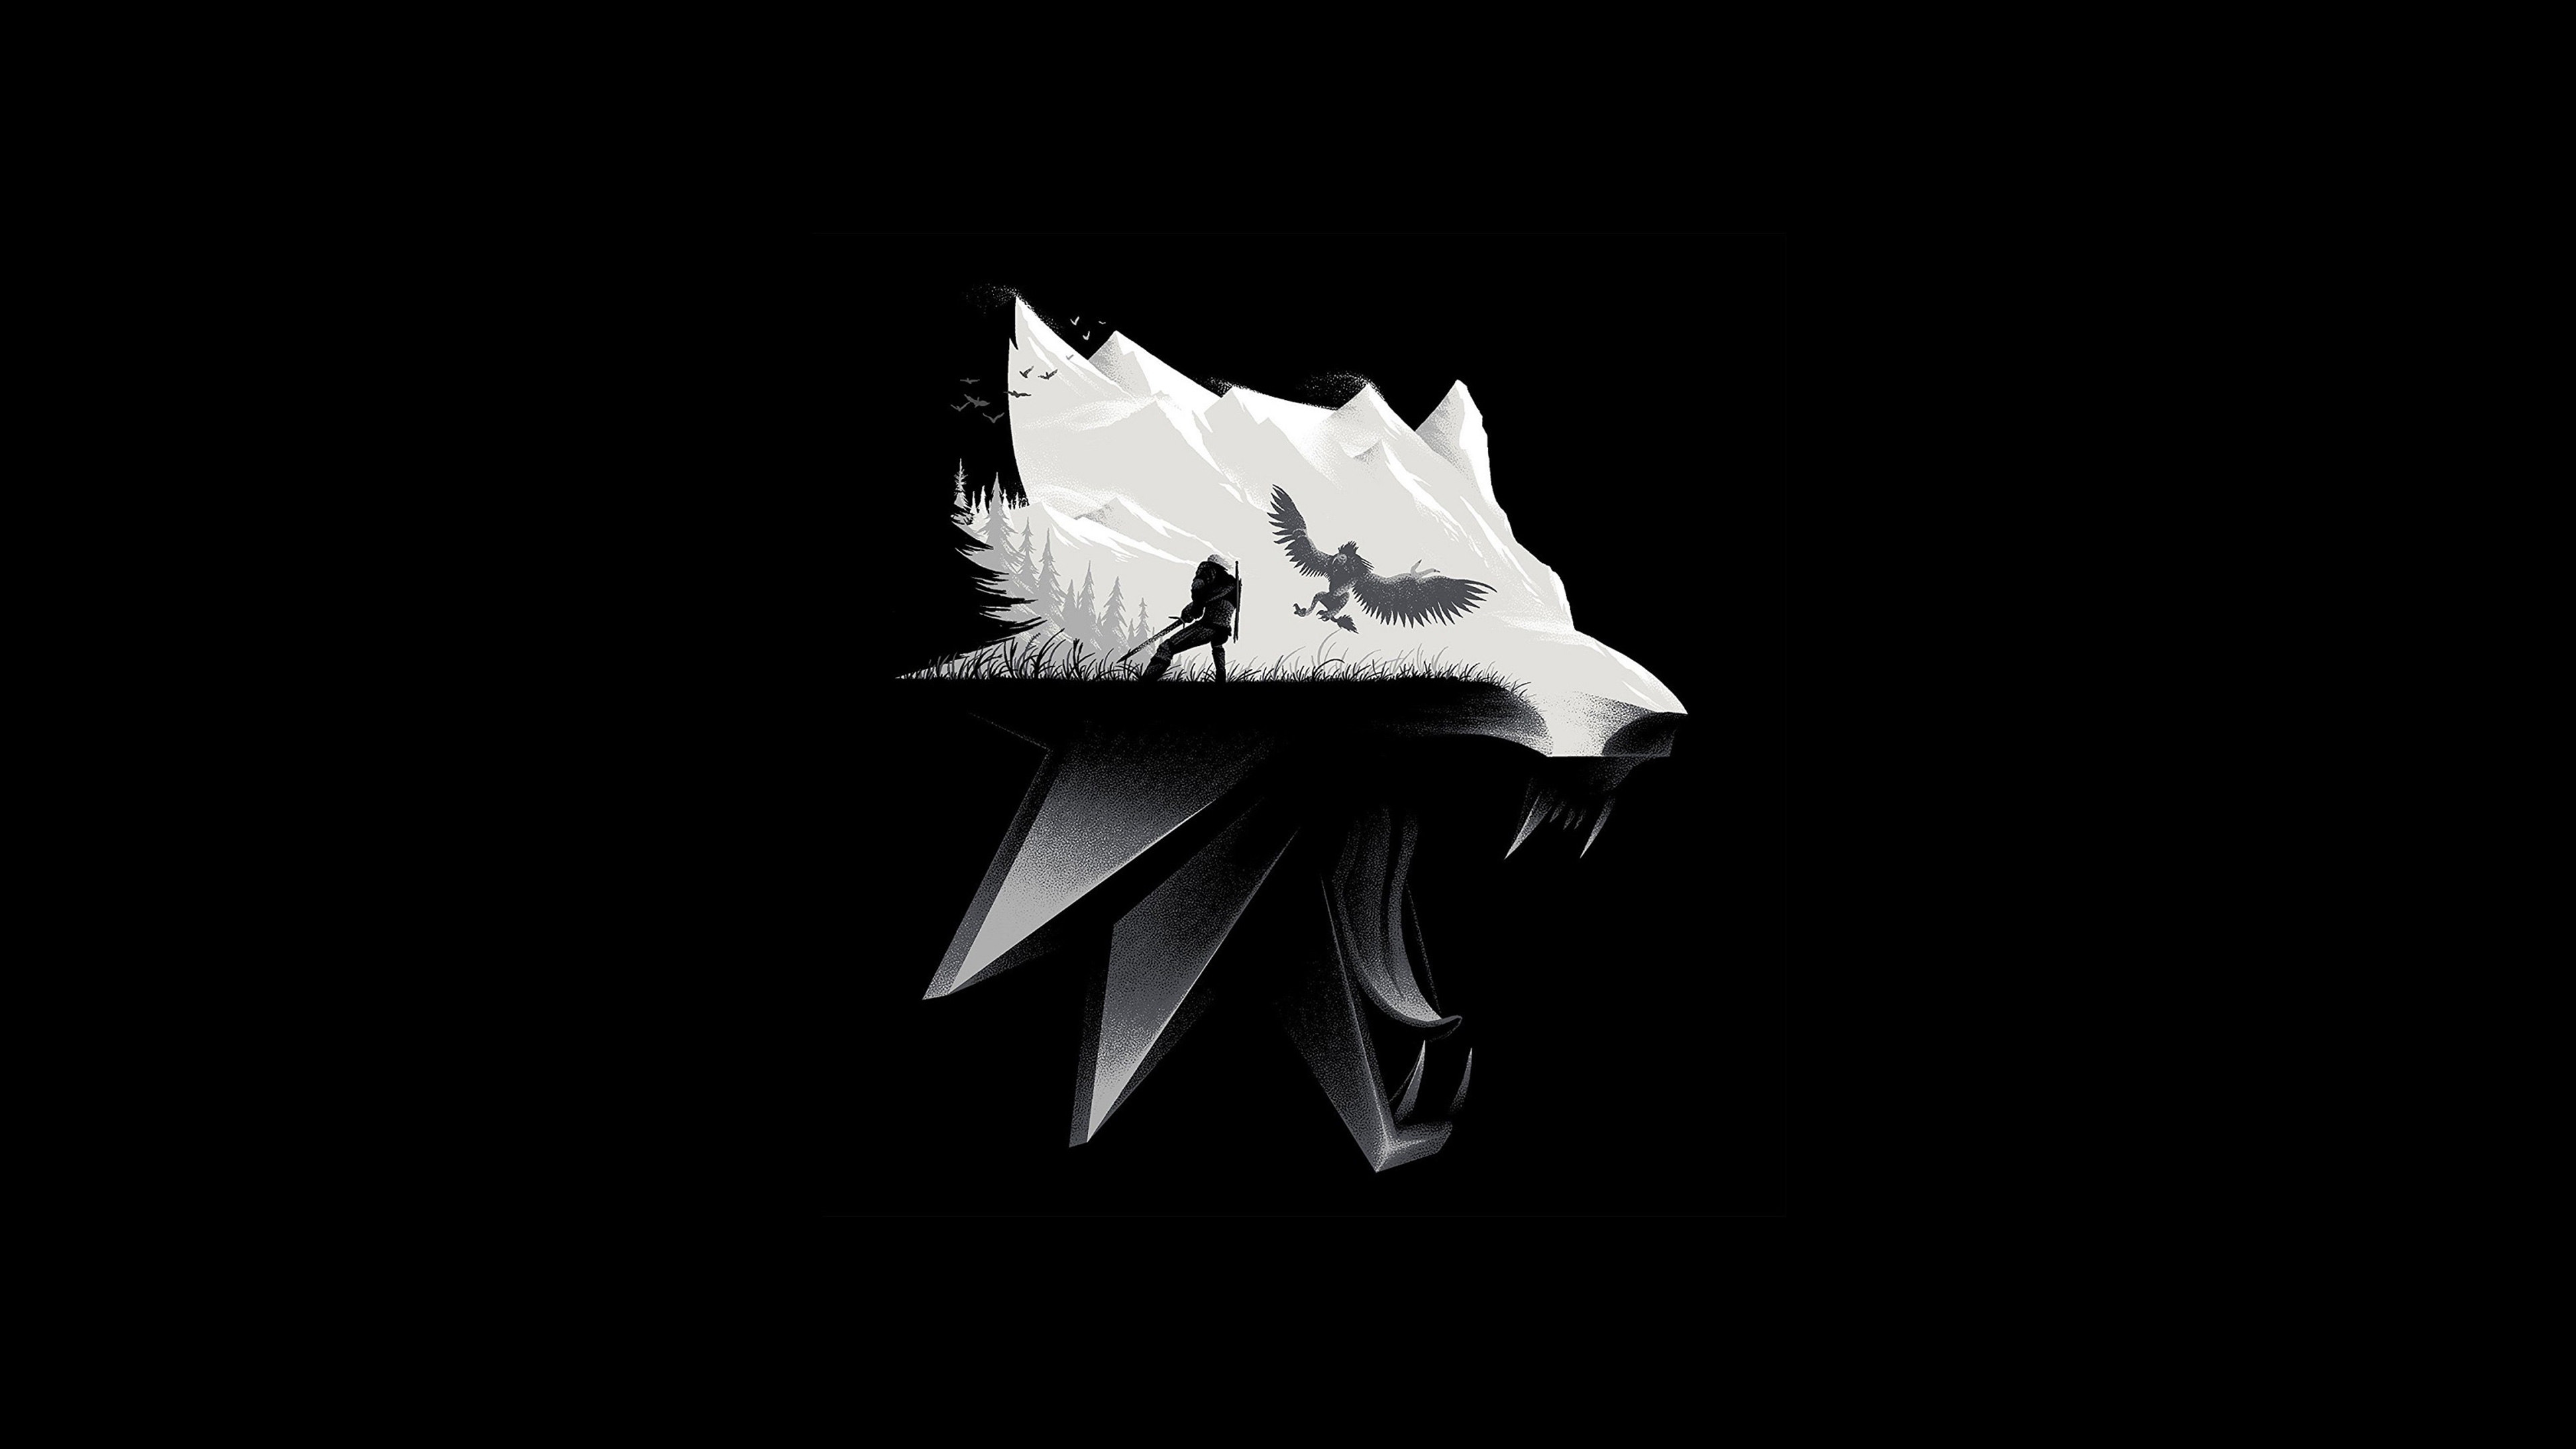 Cute Wallpaper Black And White Birds The Witcher 3 Wild Hunt Wolf Artwork Hd Games 4k